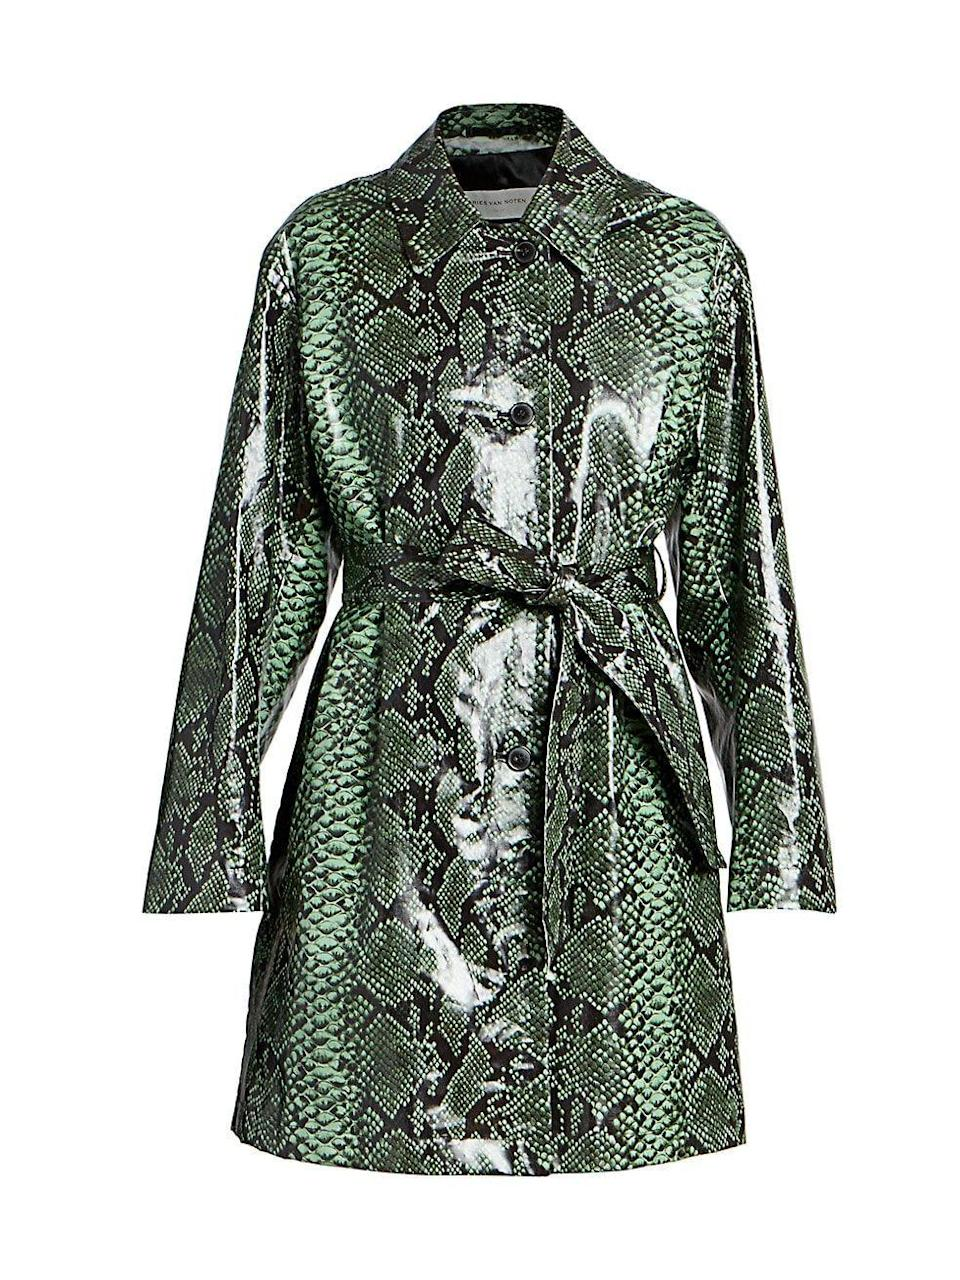 "<p><strong>Dries Van Noten</strong></p><p>saksfifthavenue.com</p><p><strong>$1845.00</strong></p><p><a href=""https://go.redirectingat.com?id=74968X1596630&url=https%3A%2F%2Fwww.saksfifthavenue.com%2Fproduct%2Fdries-van-noten-snakeskin-print-patent-belted-trench-coat-0400012849844.html%3Fdwvar_0400012849844_color%3DGREEN&sref=https%3A%2F%2Fwww.townandcountrymag.com%2Fstyle%2Ffashion-trends%2Fg35229634%2Fbarneys-at-saks-launch%2F"" rel=""nofollow noopener"" target=""_blank"" data-ylk=""slk:Shop Now"" class=""link rapid-noclick-resp"">Shop Now</a></p>"